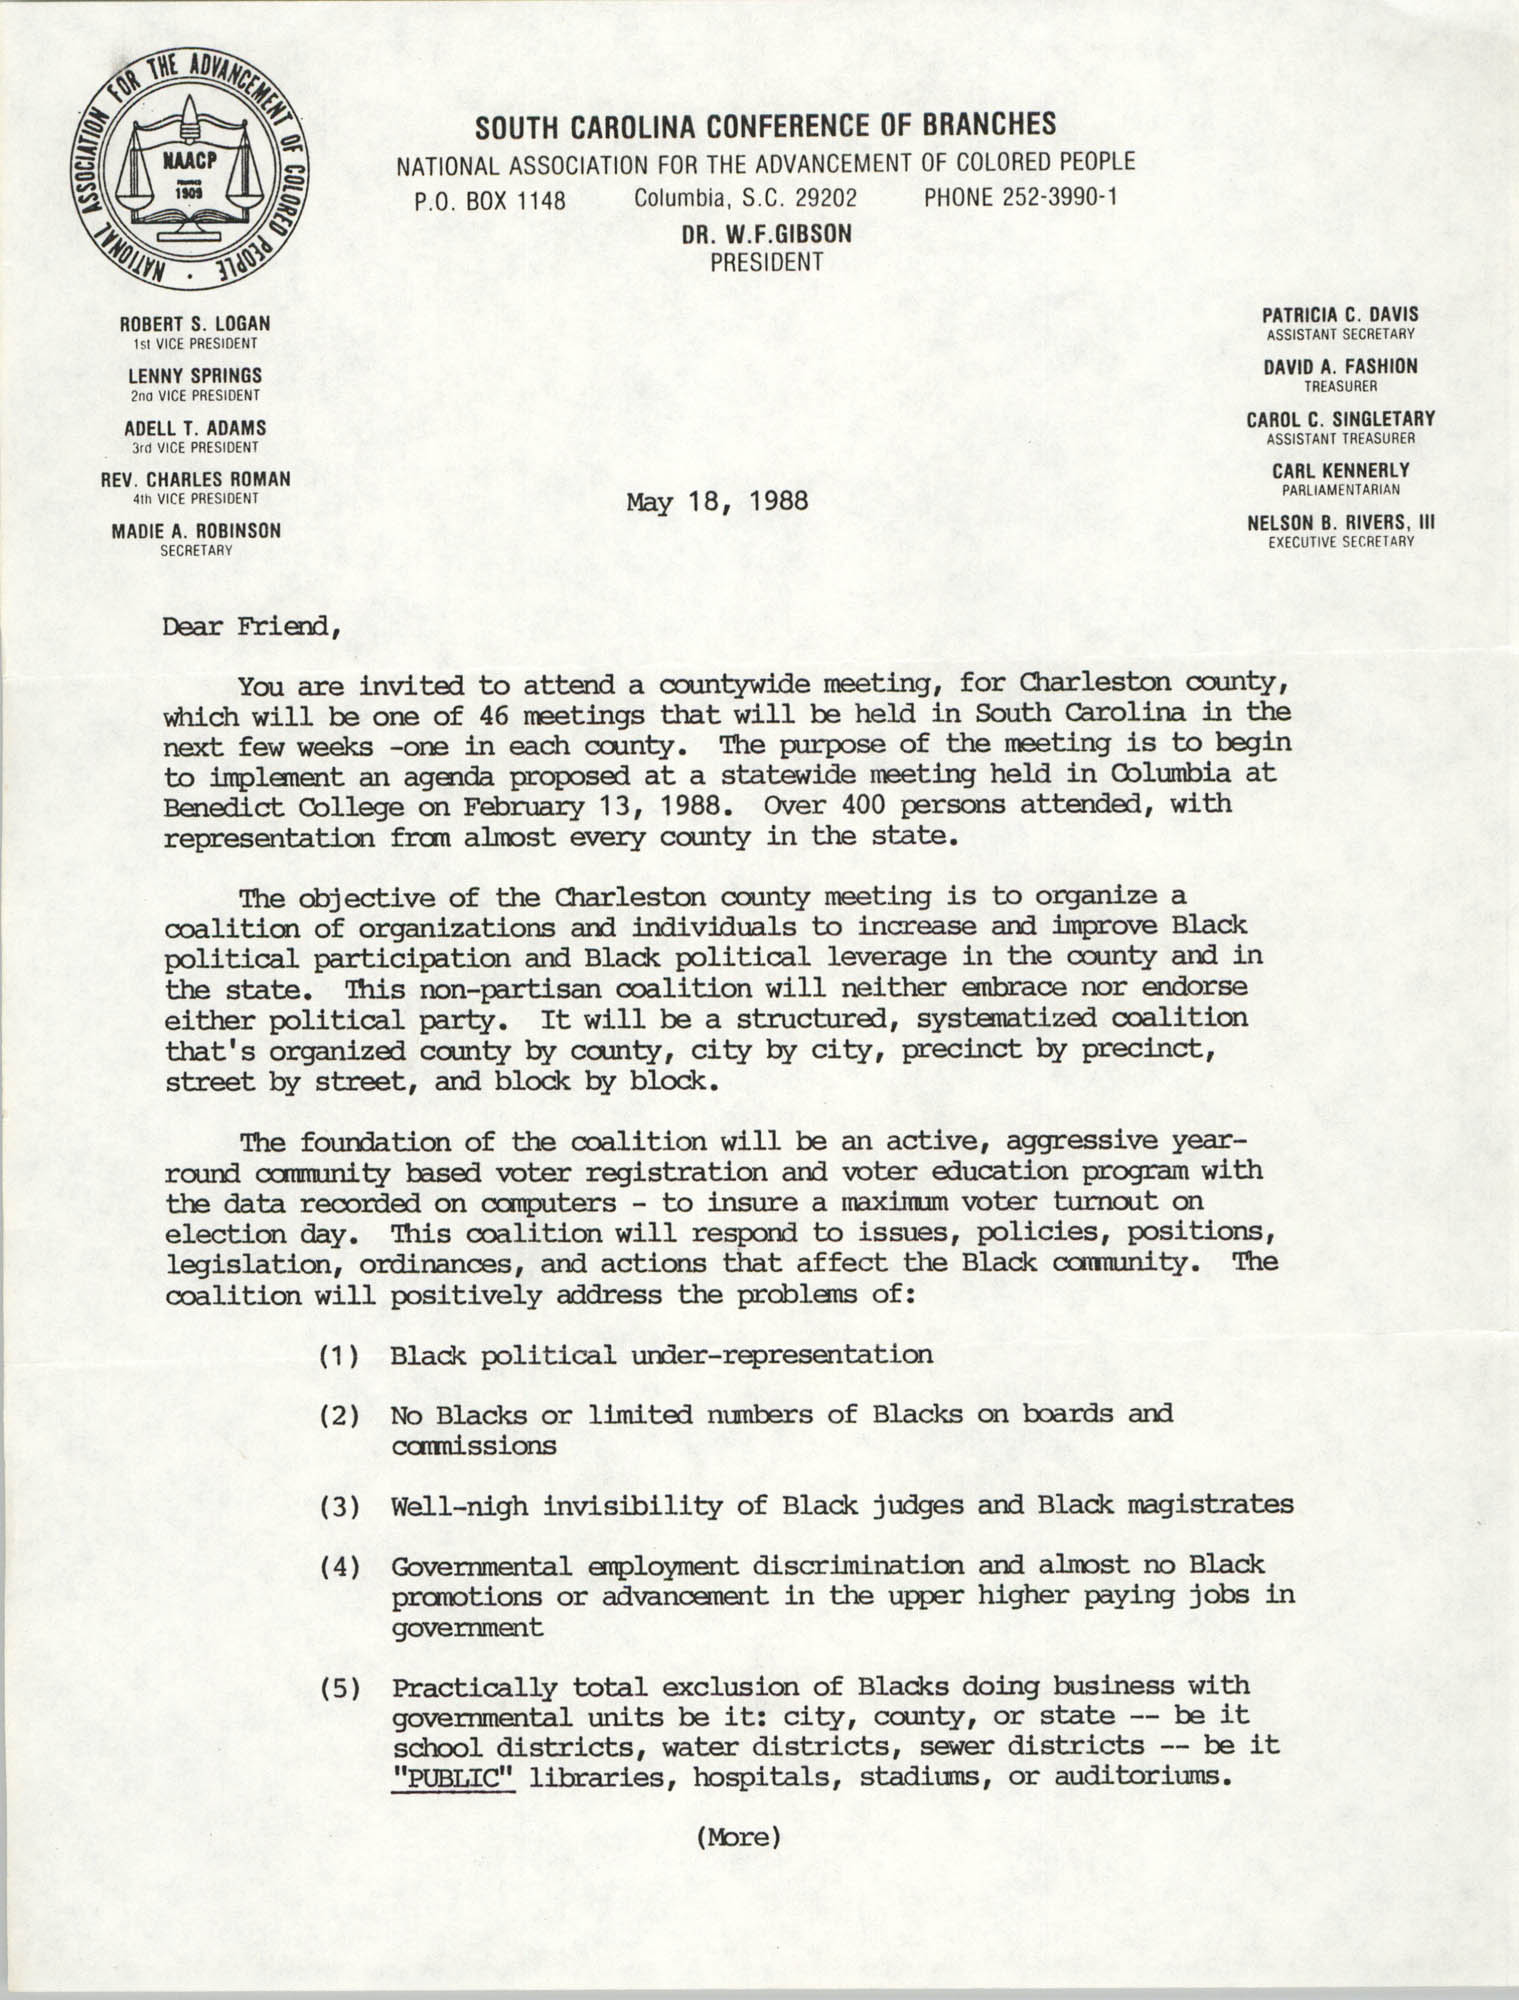 South Carolina Conference of Branches of the NAACP Memorandum, May 18, 1988